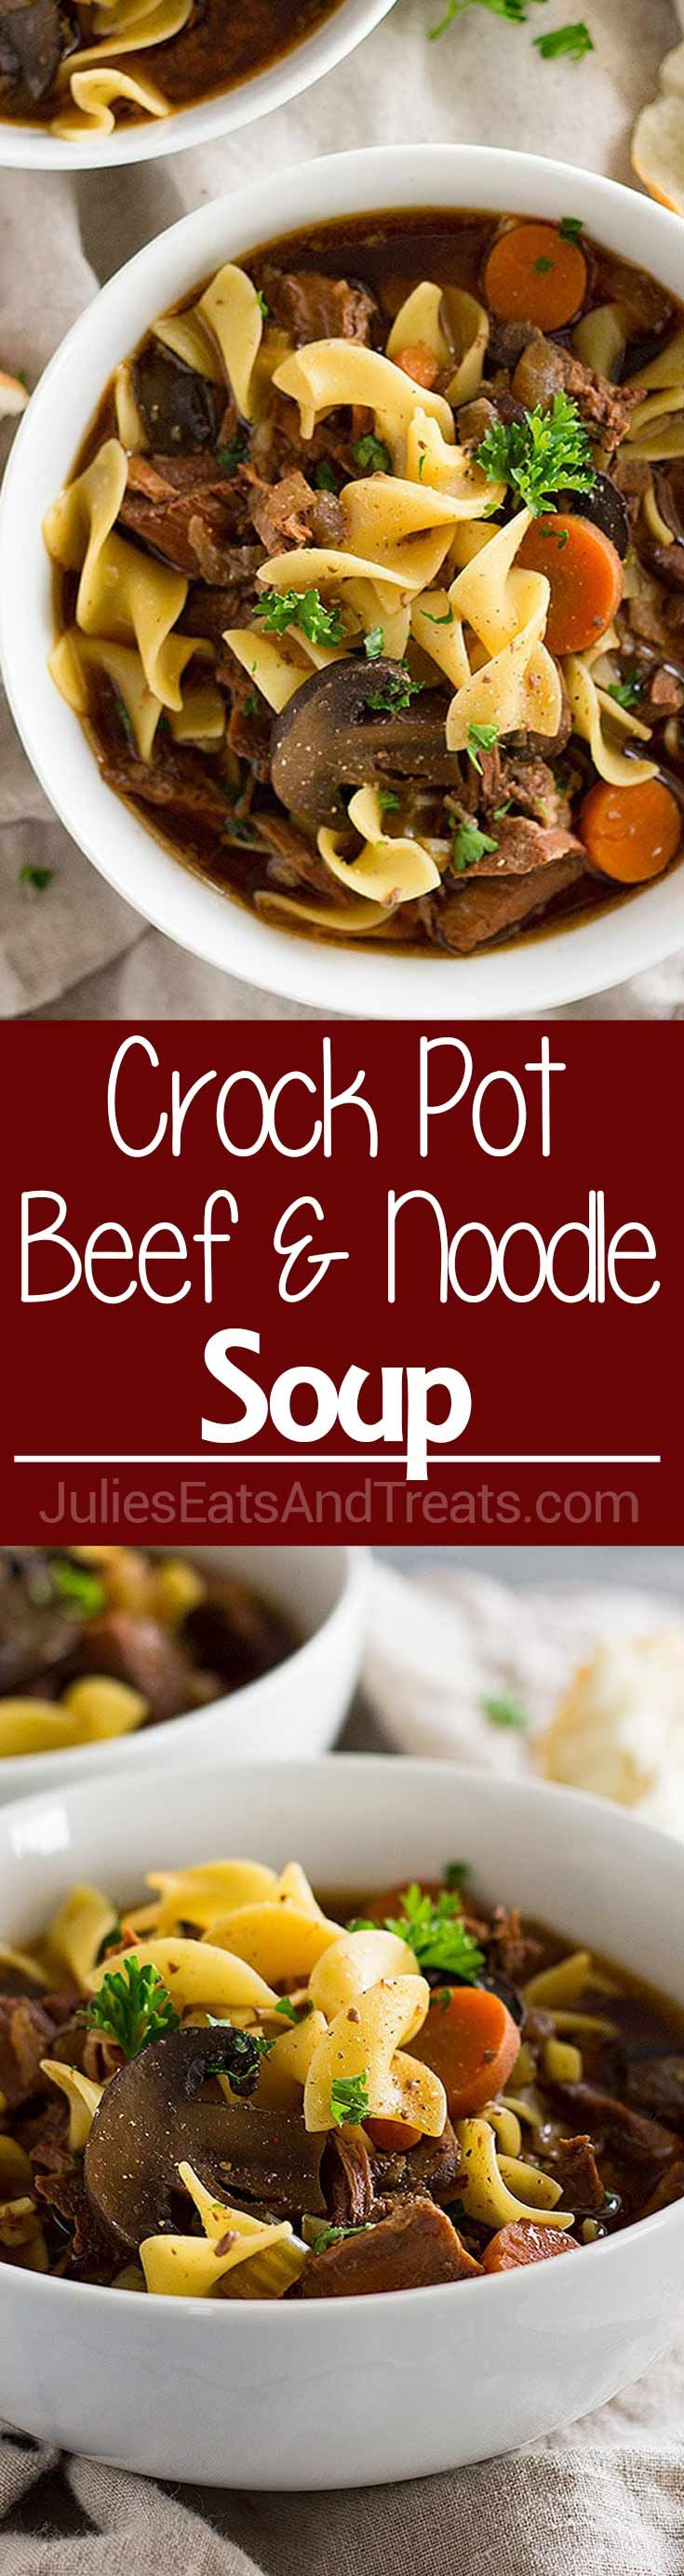 Crock Pot Beef and Noodle Soup ~  Easy Slow Cooker Beef Stew with the Addition of Pasta! Loaded with Stew Meat, Carrots, Celery, Mushrooms and Egg Noodles!  via @julieseats